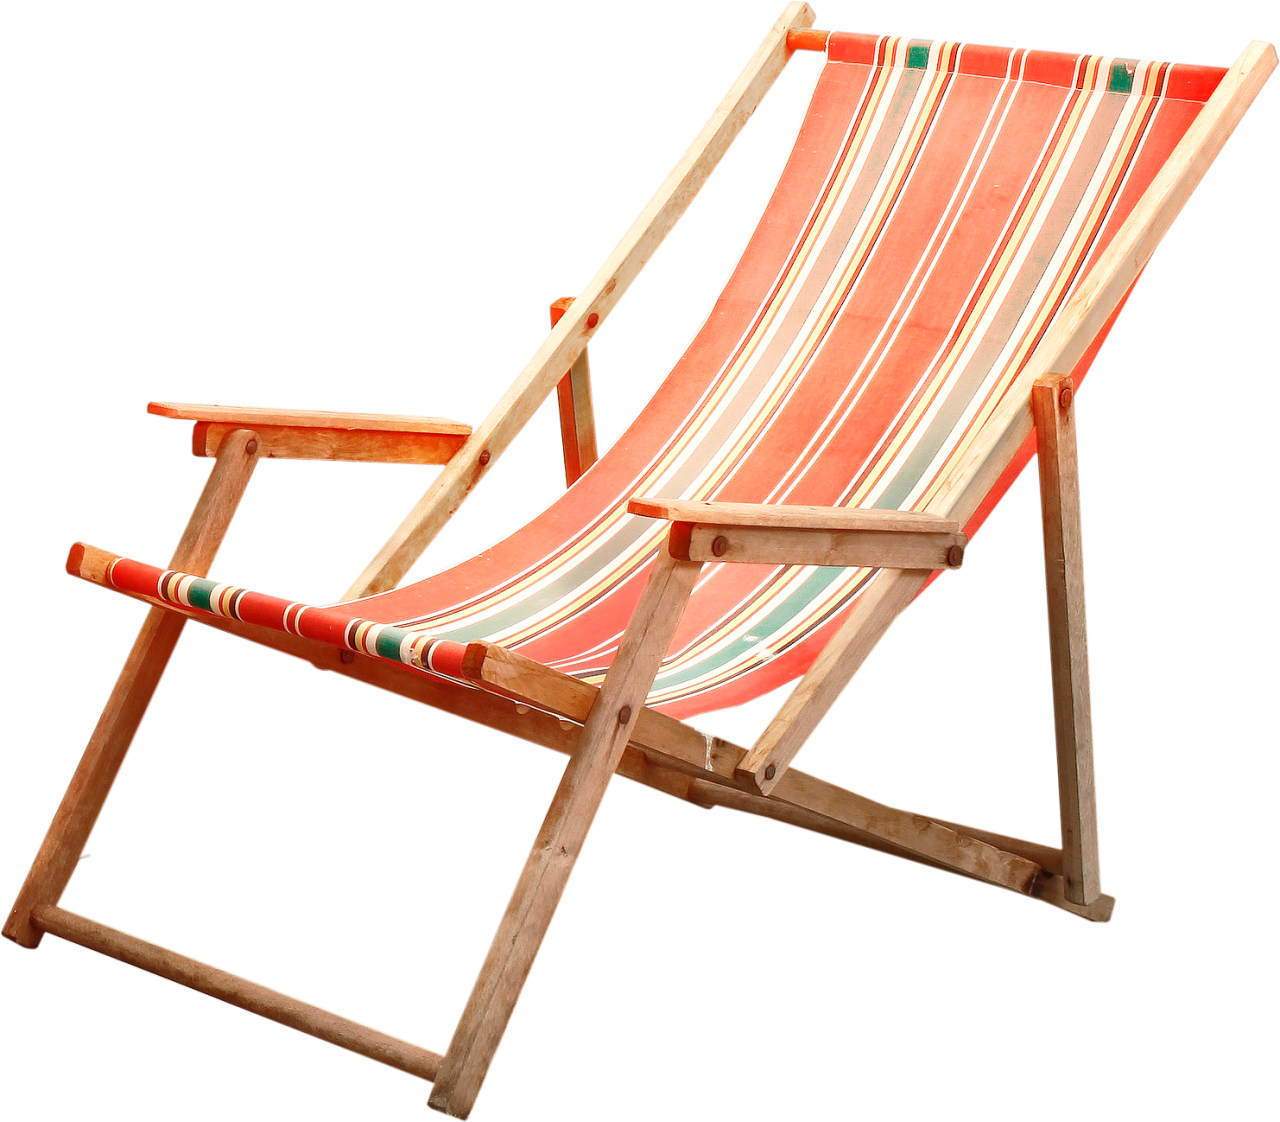 Deck Chair PNG Image